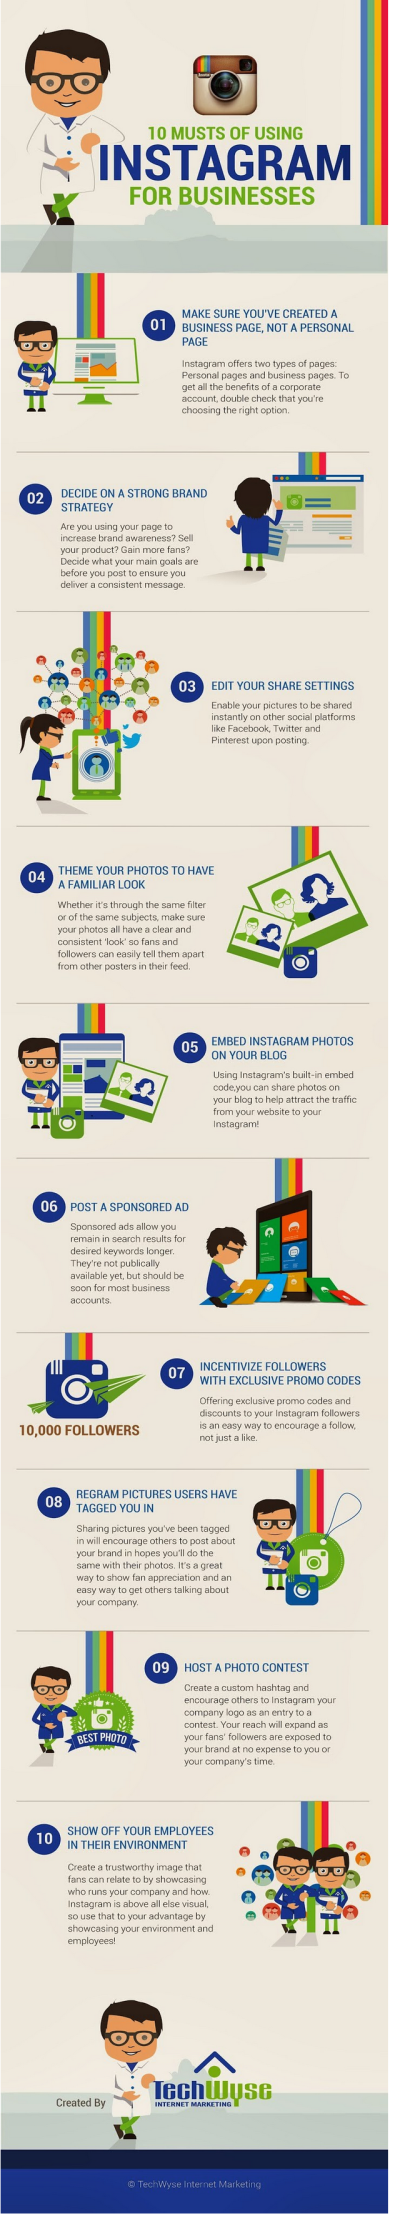 How To Use Instagram For Businesses  INFOGRAPHIC    Mobile Marketing   Rise to the Top Blog